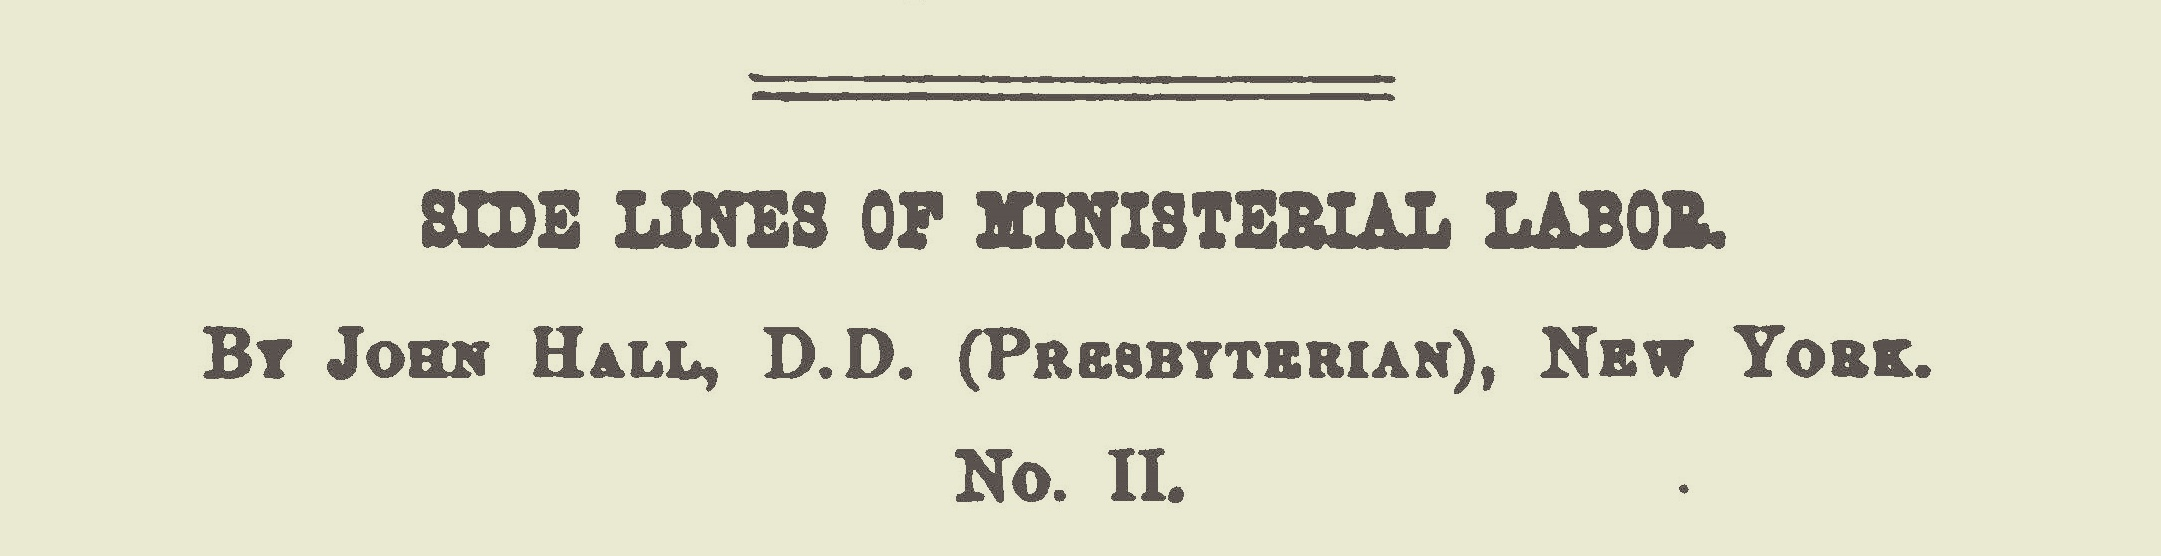 Hall, John, Side LInes of Ministerial Labor No. 2 Title Page.jpg